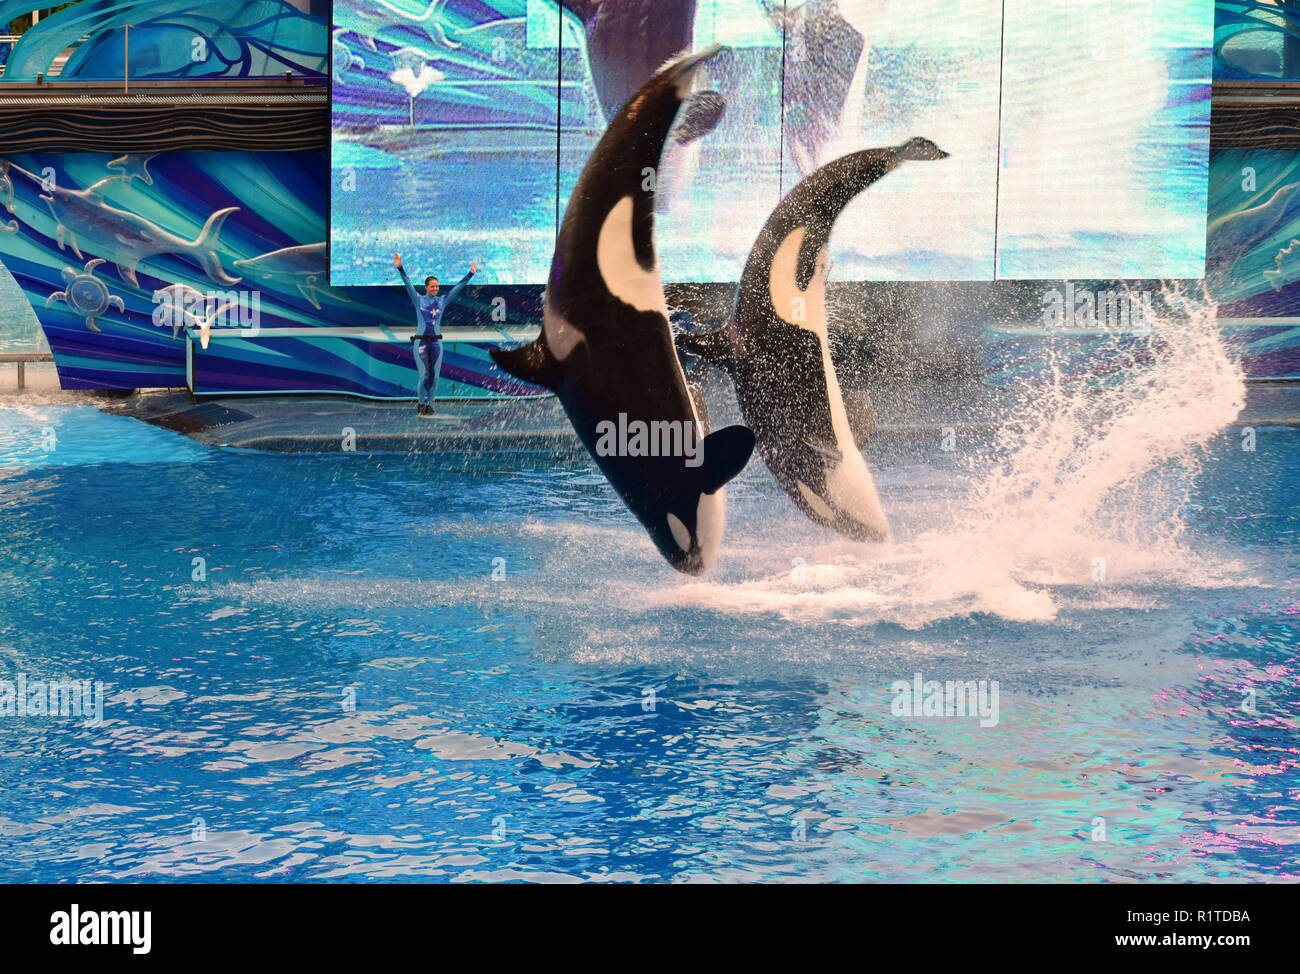 Orlando, Florida. September 09, 2018 Two whales jumping in One Ocean SeaWorld's signature killer whale. - Stock Image